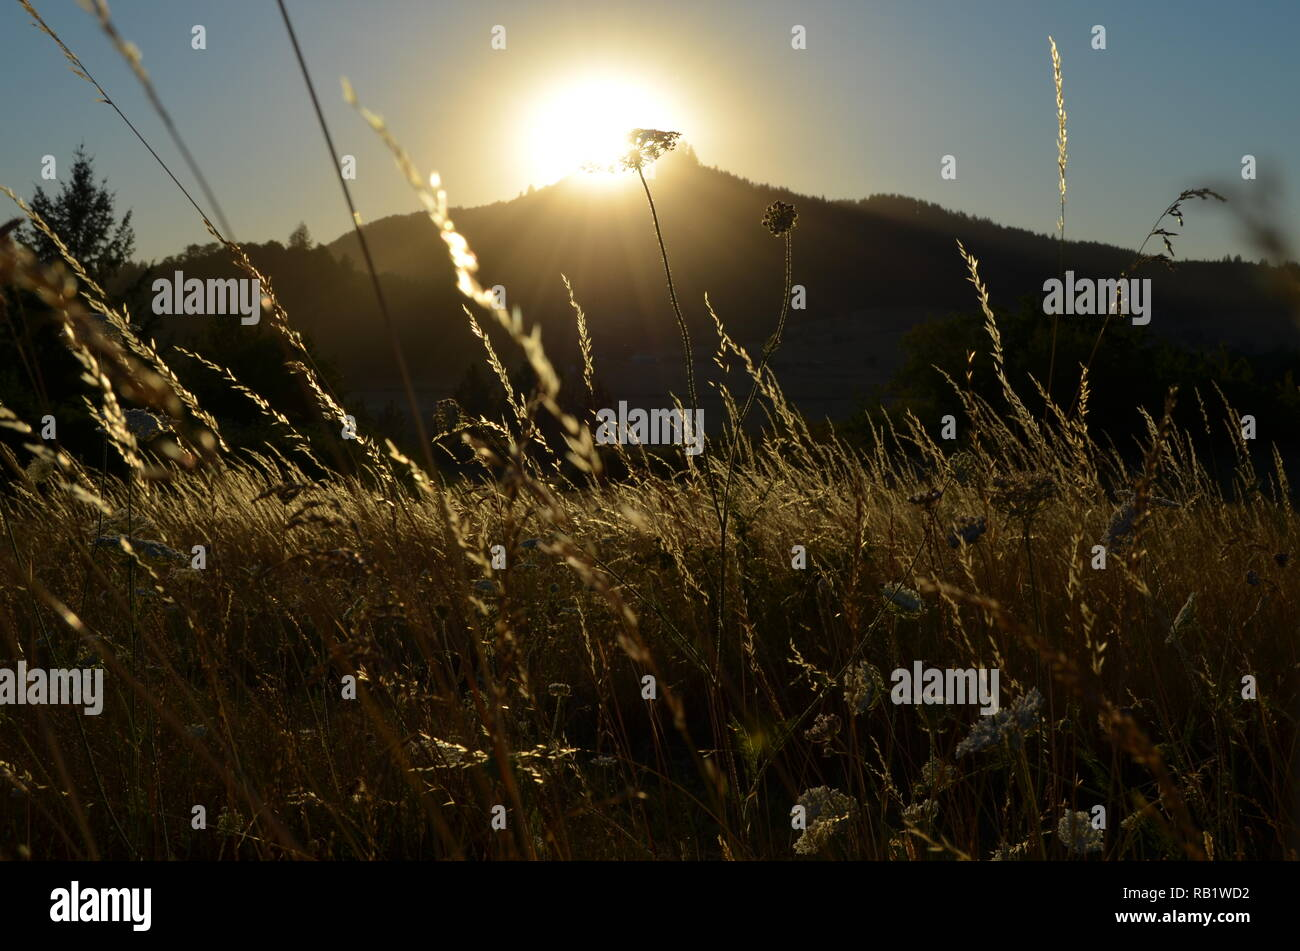 Summer grasses glowing in setting sun over butte. Stock Photo